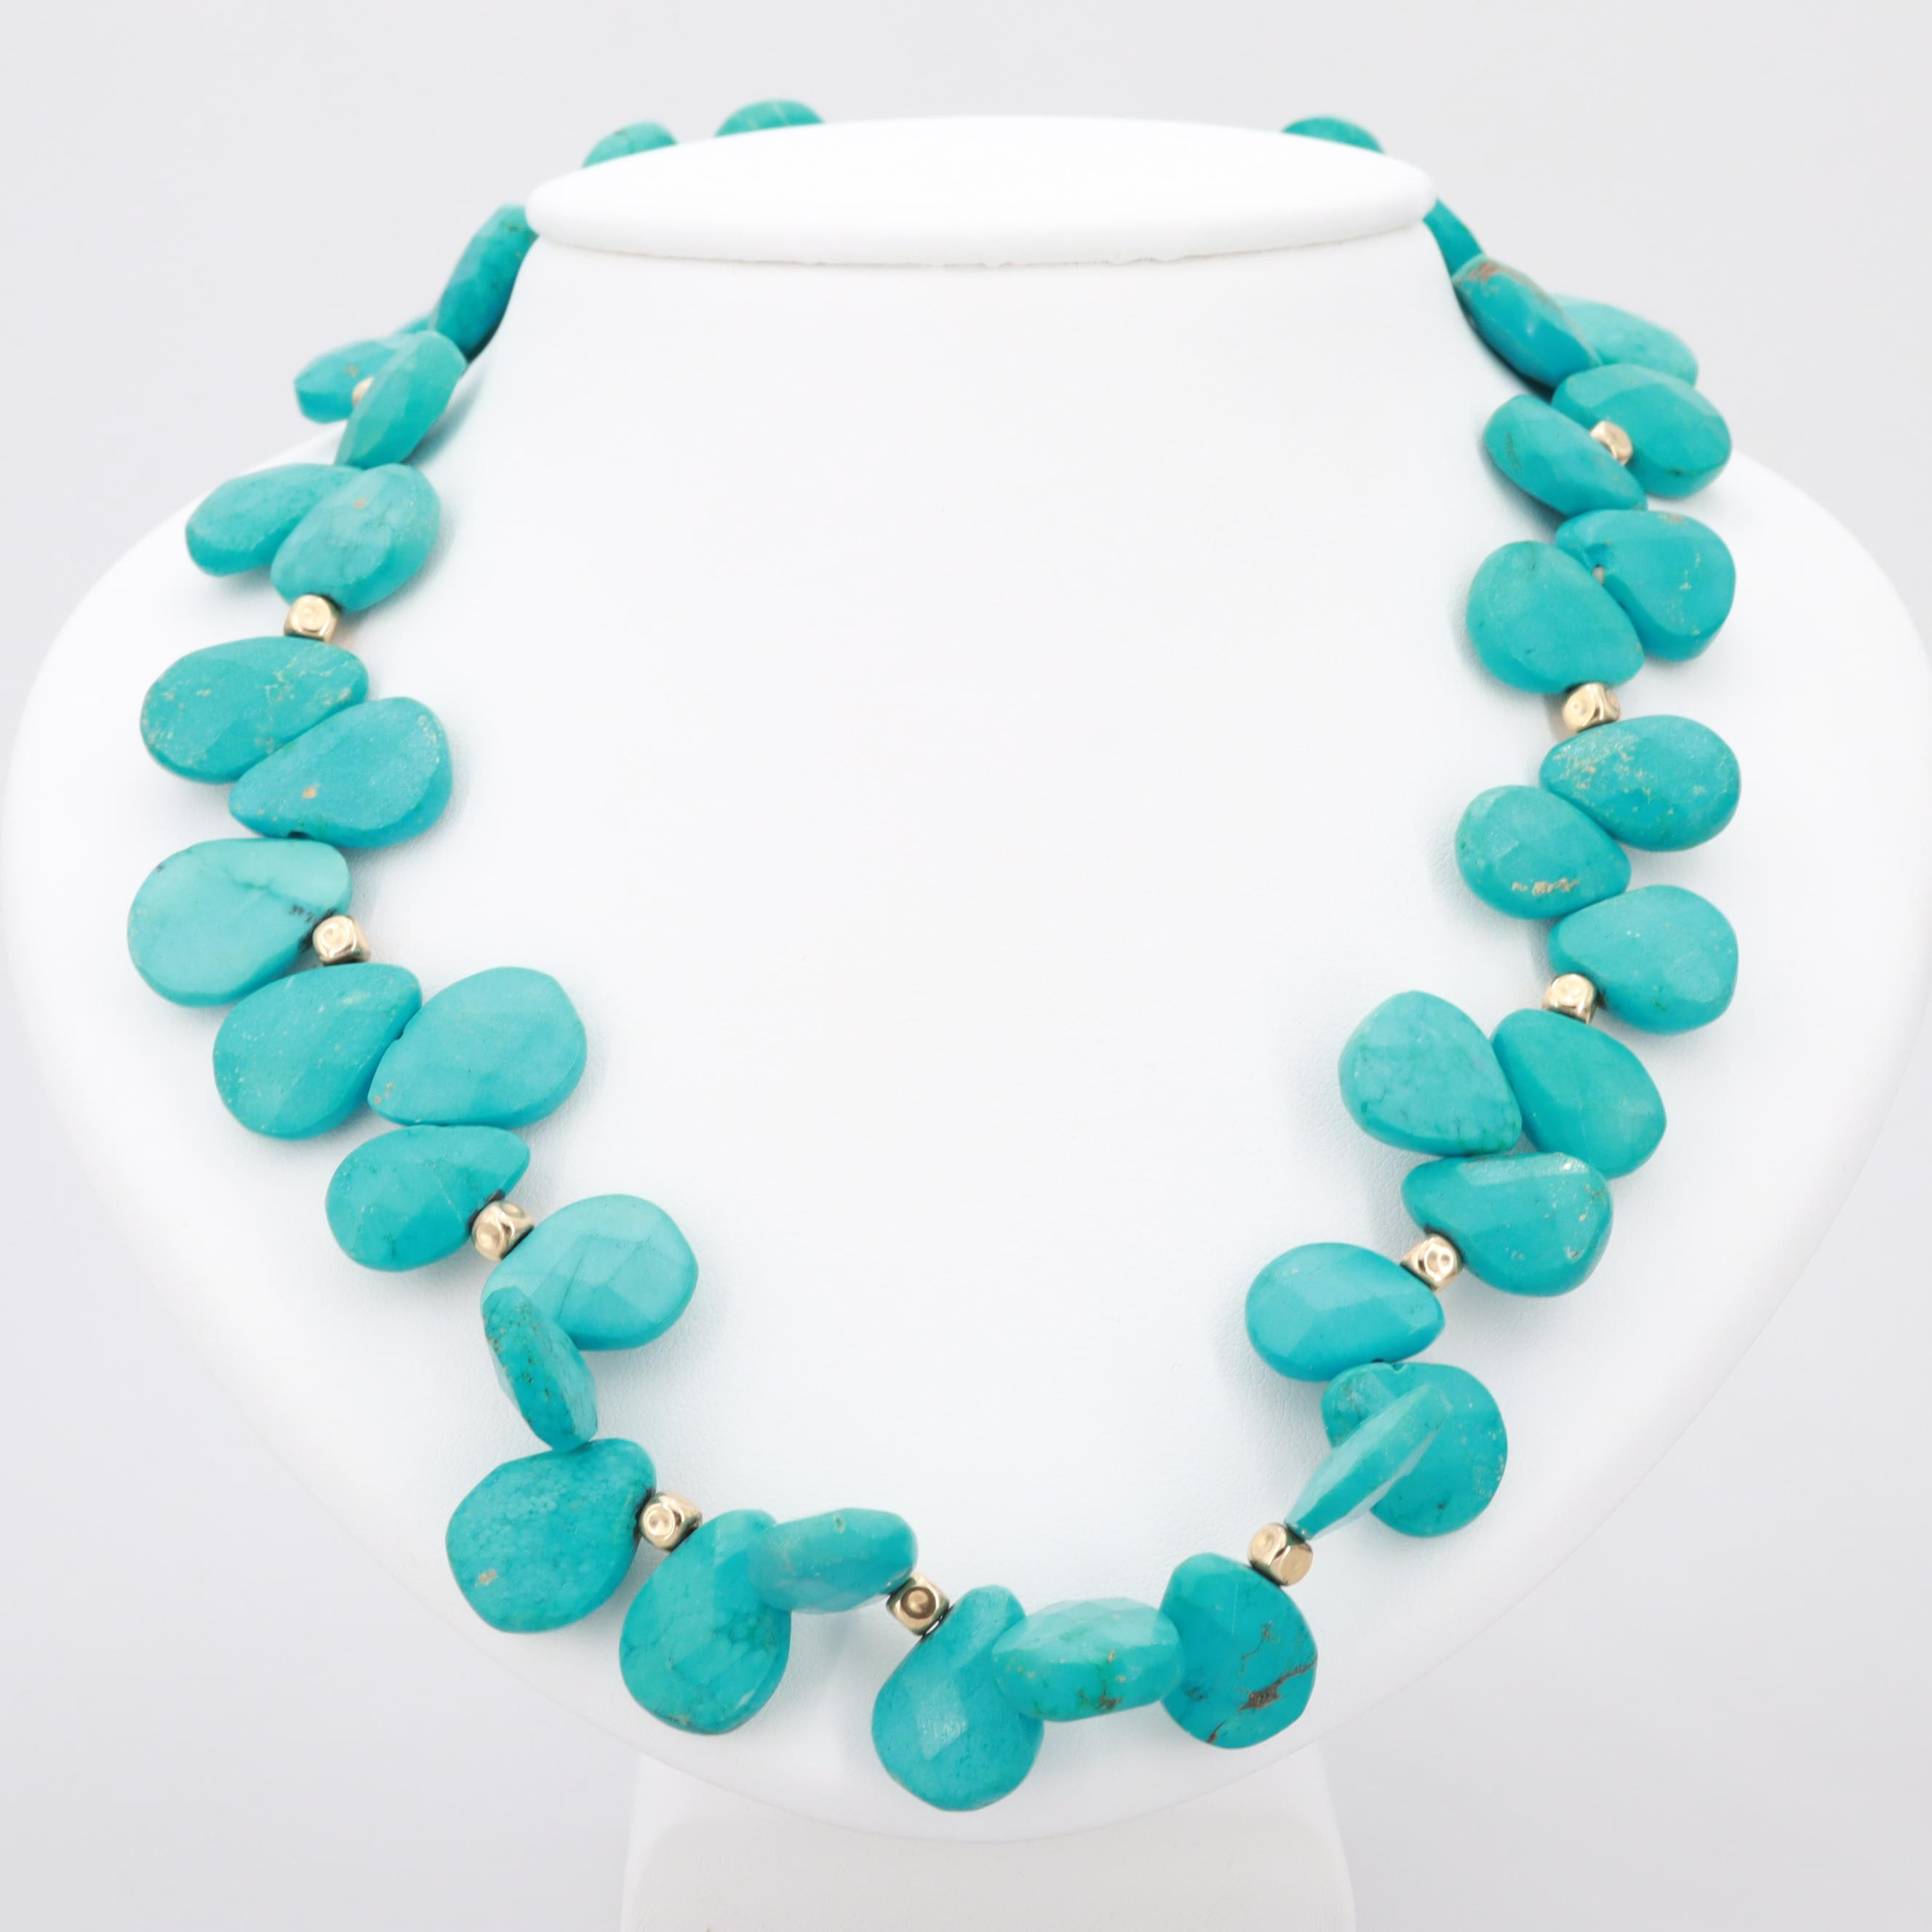 14K Yellow Gold Magnesite Necklace with Toggle Closure